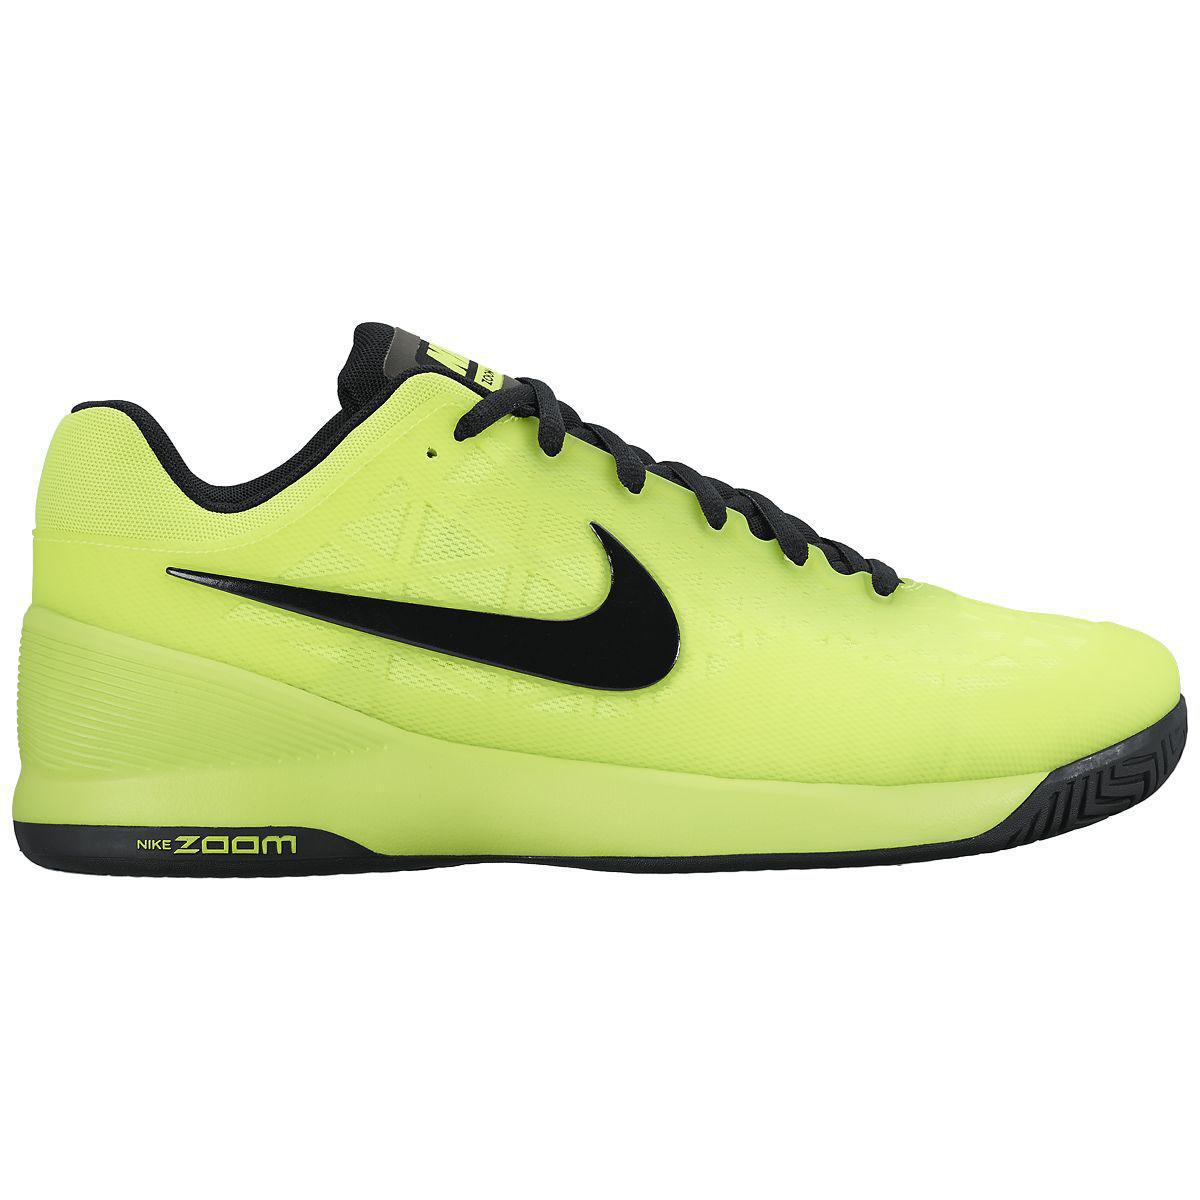 Kids Tennis Shoes At Midwest Sports, you'll find an extensive selection of kids' tennis shoes. We have the latest designs featuring the perfect mix of performance and durability for any junior tennis player.